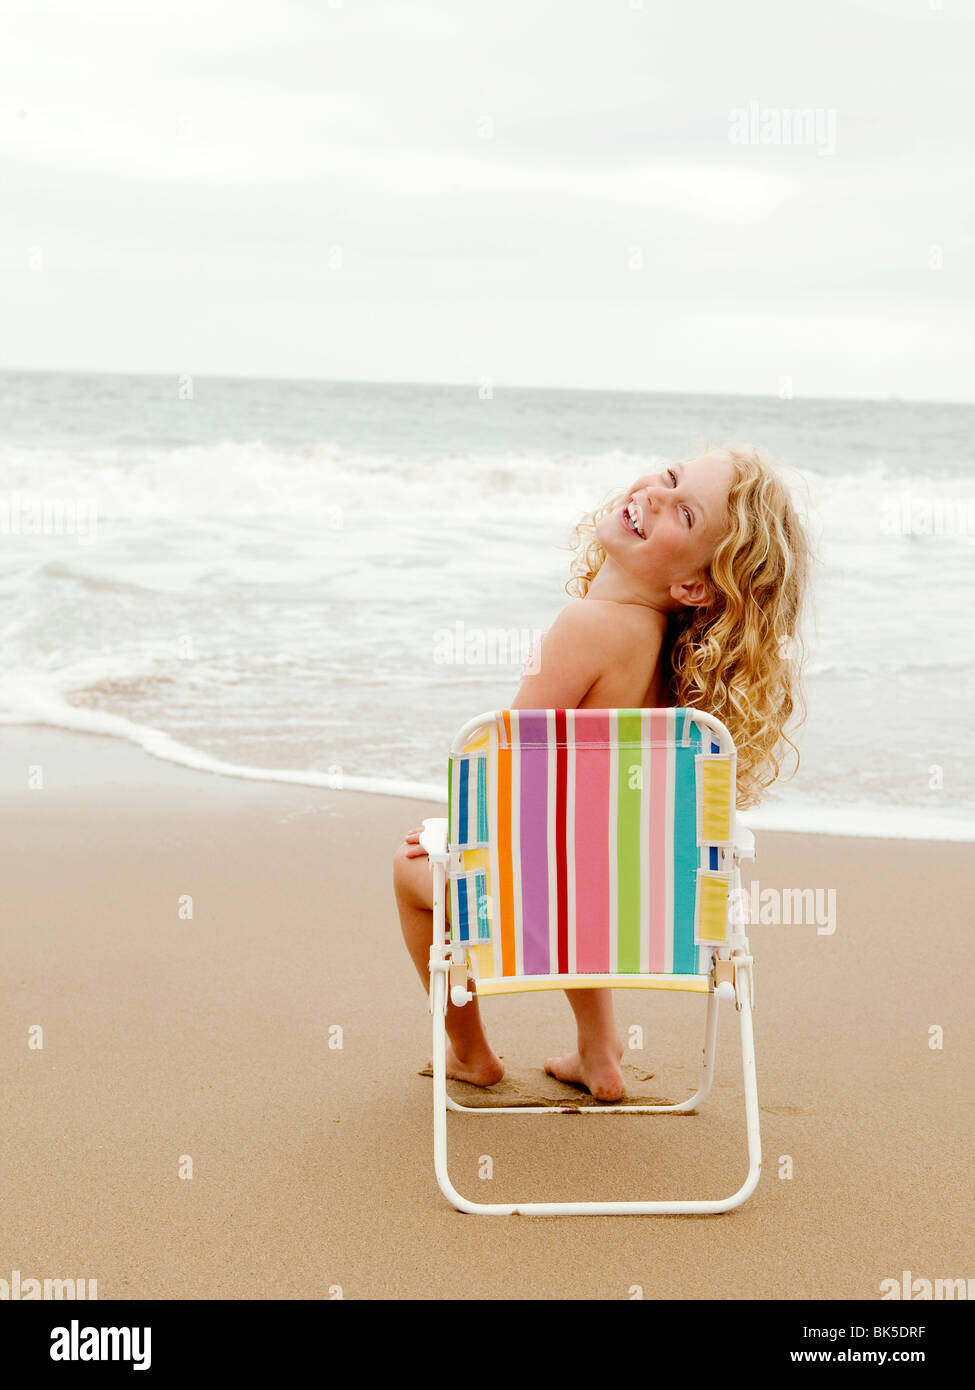 Young girl sitting on a beach chair at the beach - Stock Image